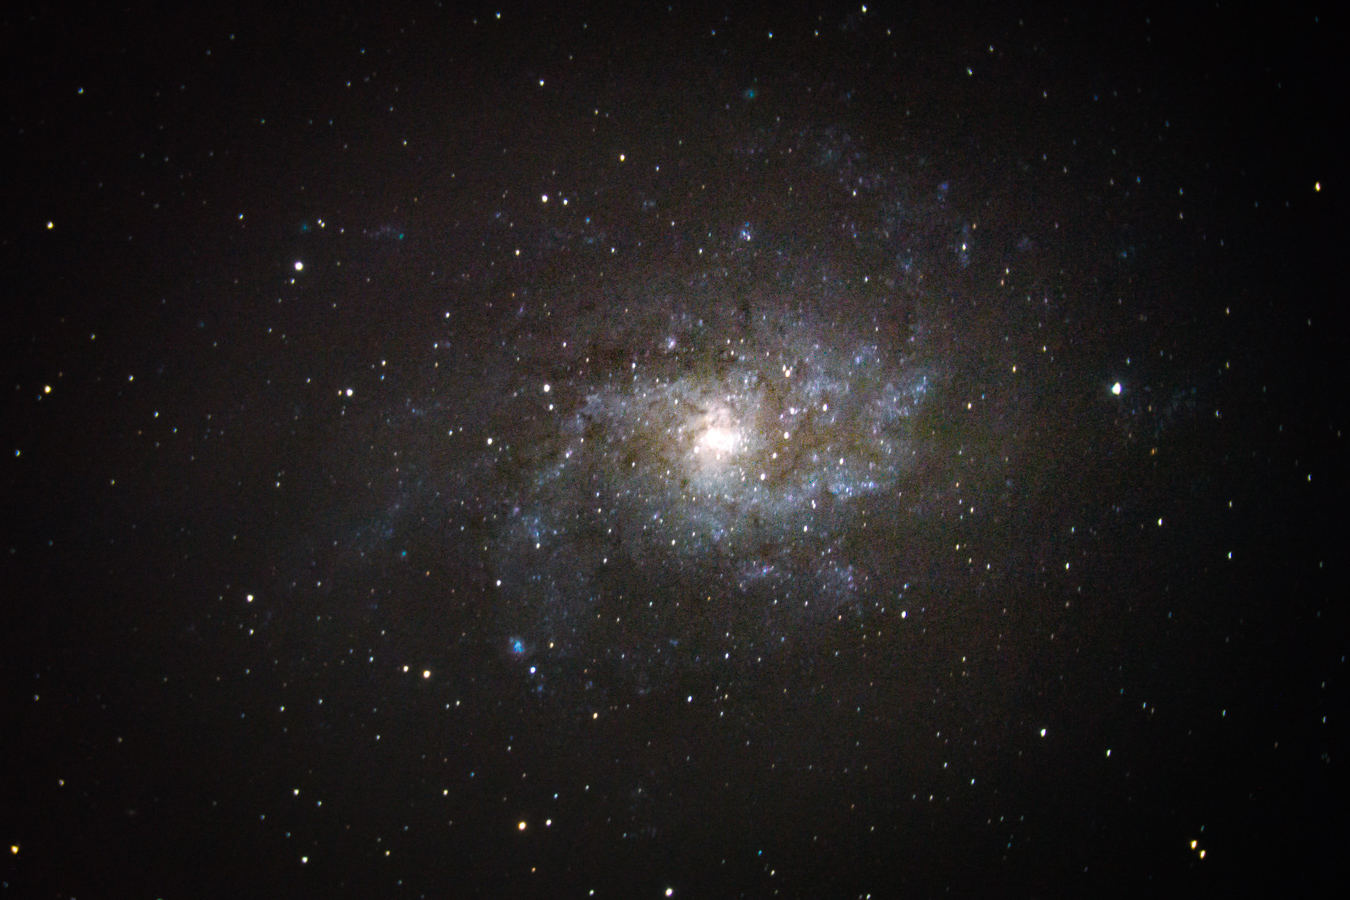 M33, the Triangulum galaxy, imaged with my Celestron 8SE. You can even see one of this galaxy's bright nebulae, NGC 604, towards the bottom left.